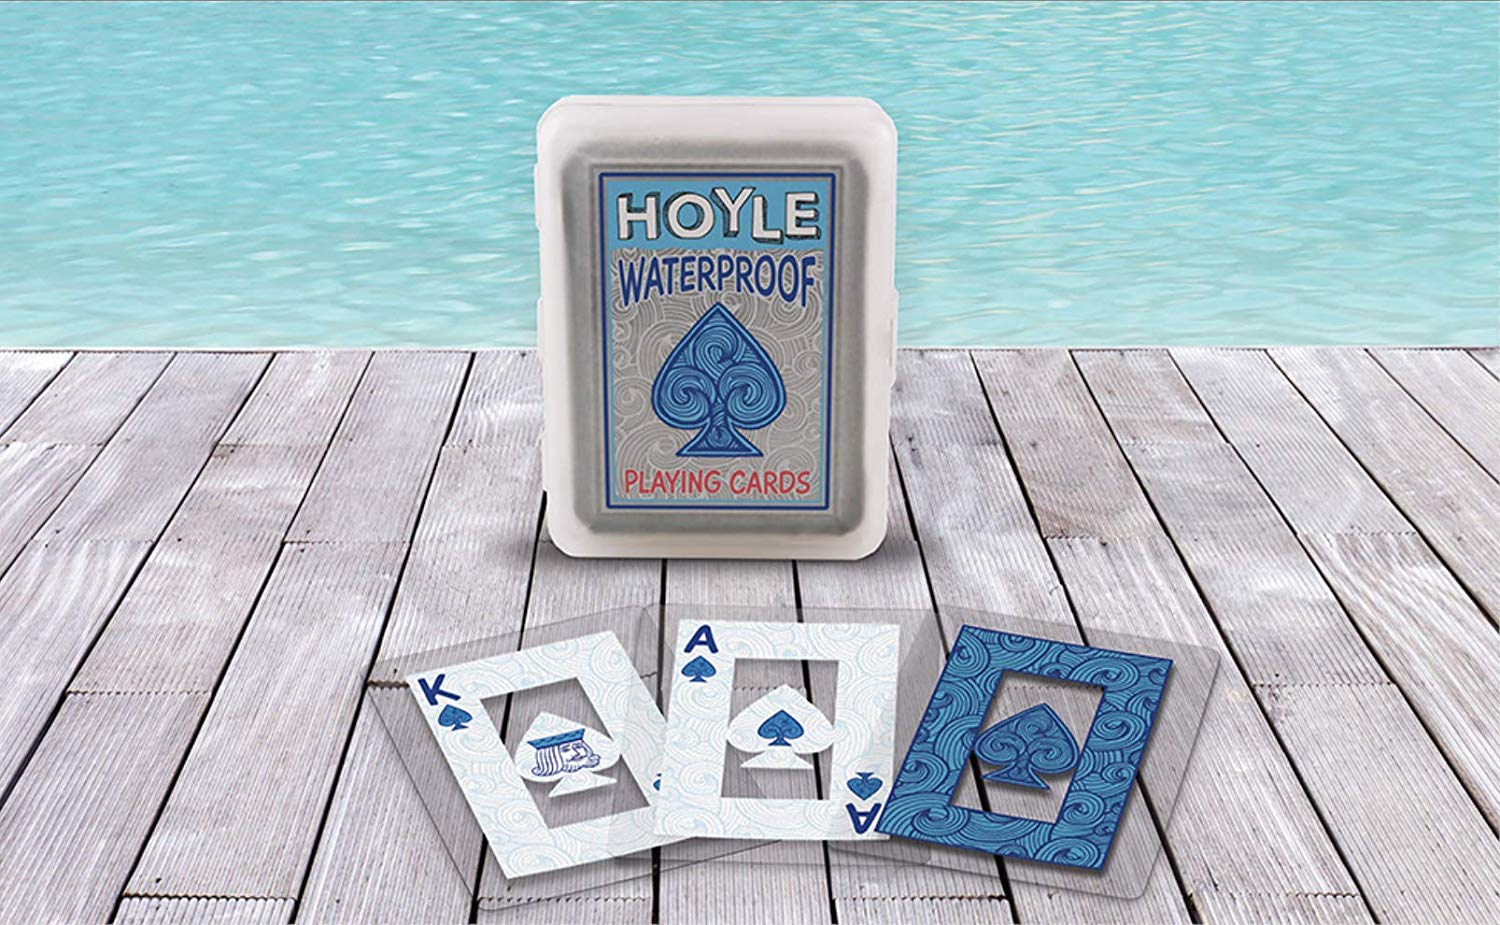 Waterproof Playing Cards.jpg